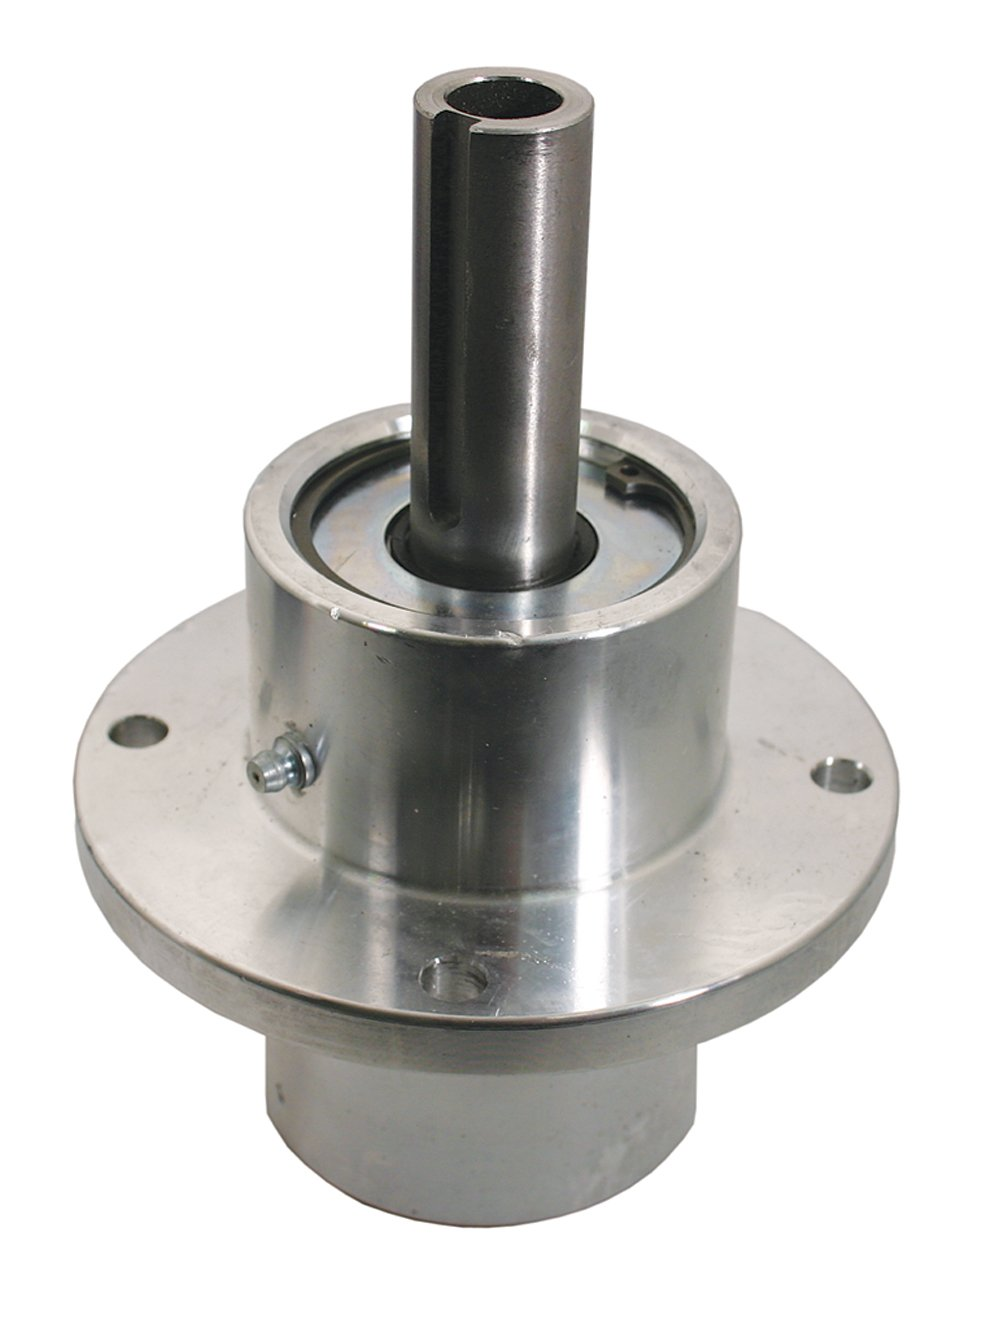 Stens 285-201 Spindle Assembly